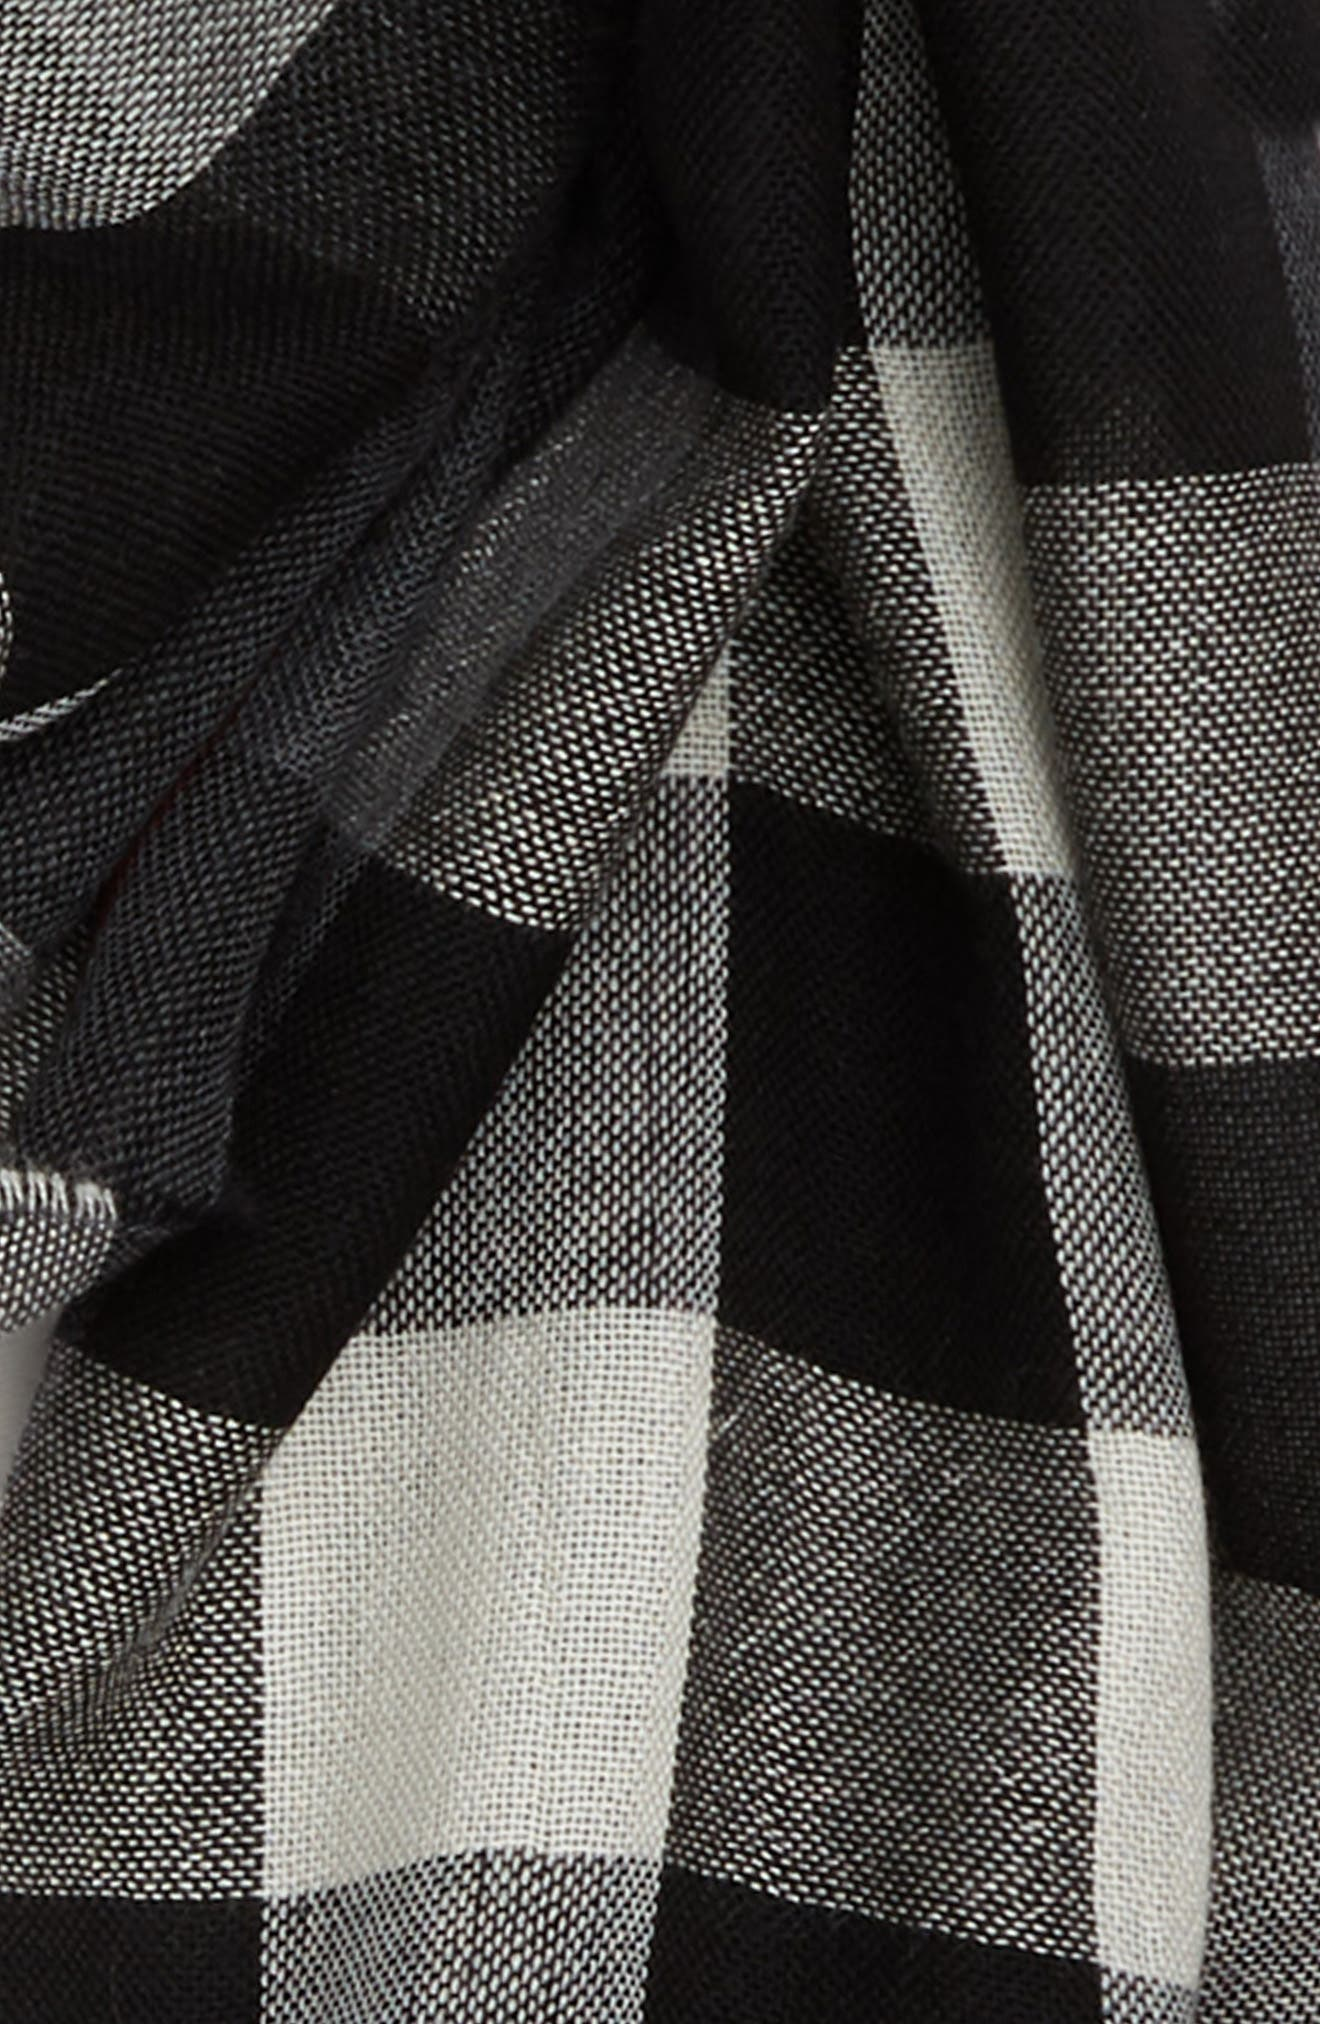 Tonal Lightweight Check Cashmere Wool Scarf,                             Alternate thumbnail 3, color,                             001